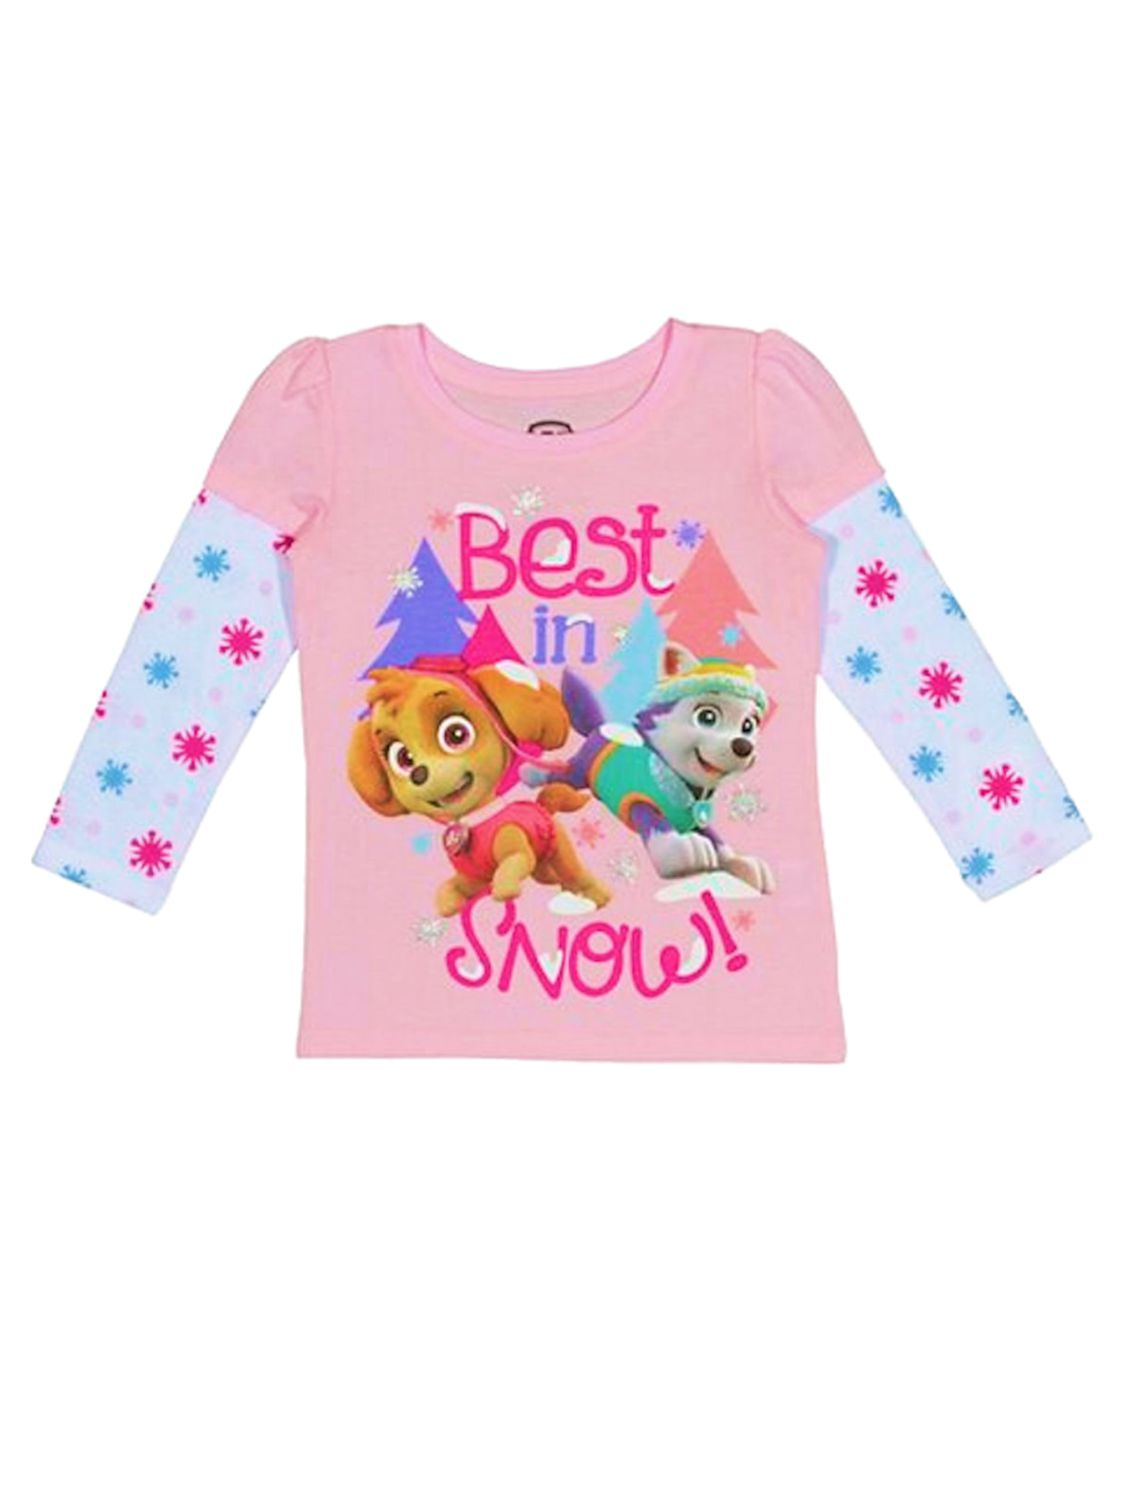 Paw Patrol Toddler Girl Pink Best In Snow! Holiday T-Shirt Skye Everest Shirt